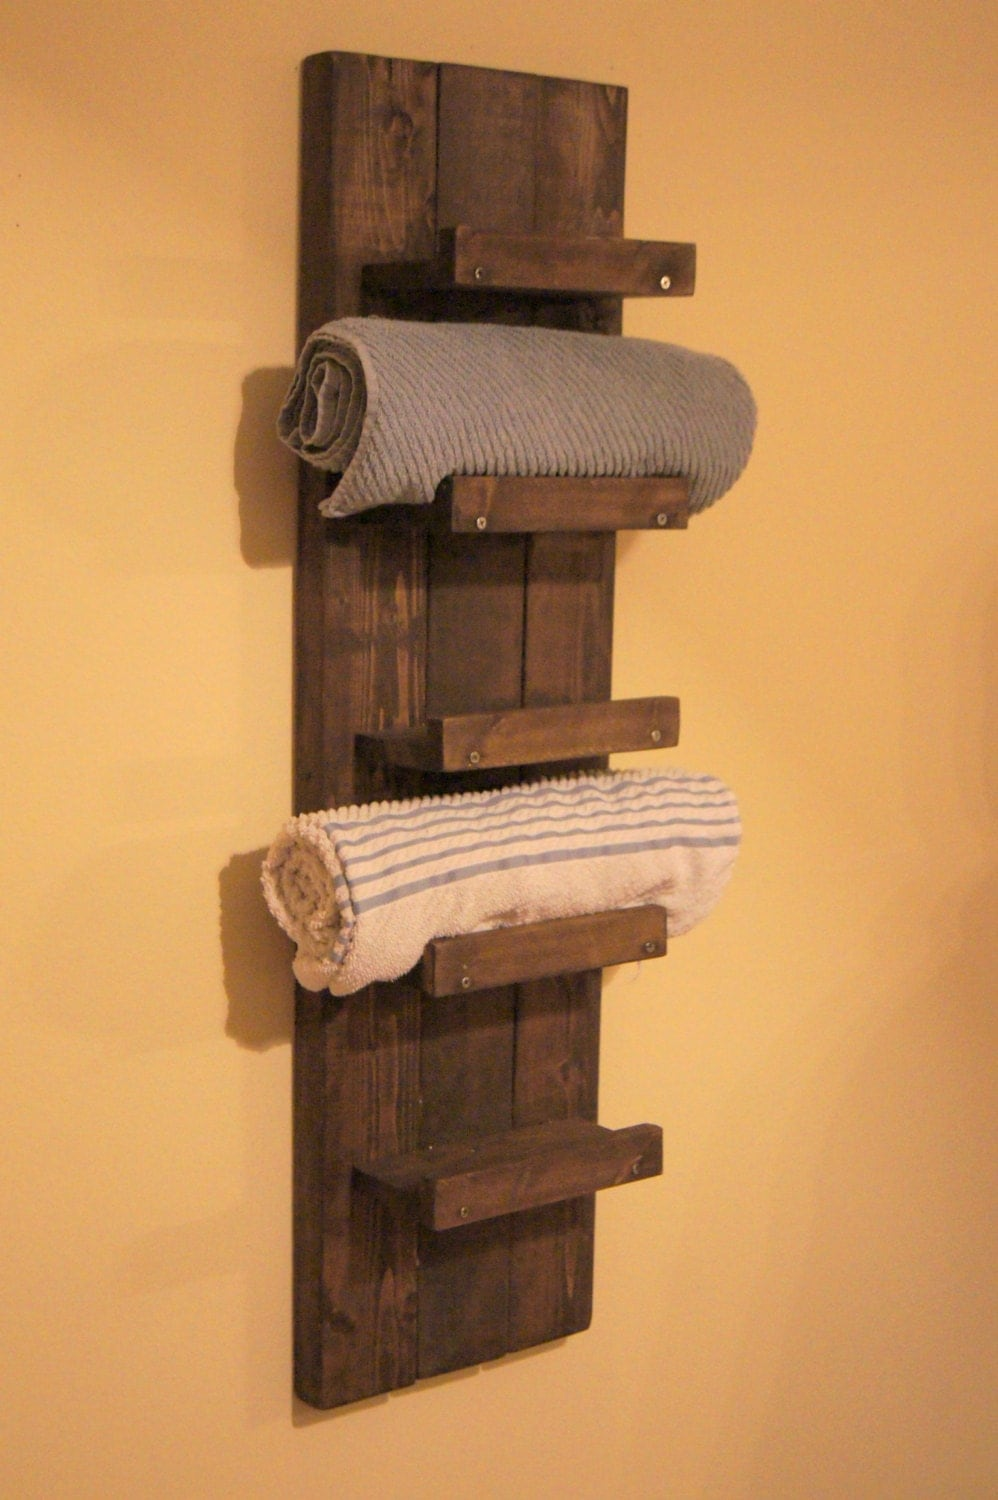 Towel rack bathroom towel shelf bathroom towel by for Bathroom towel racks